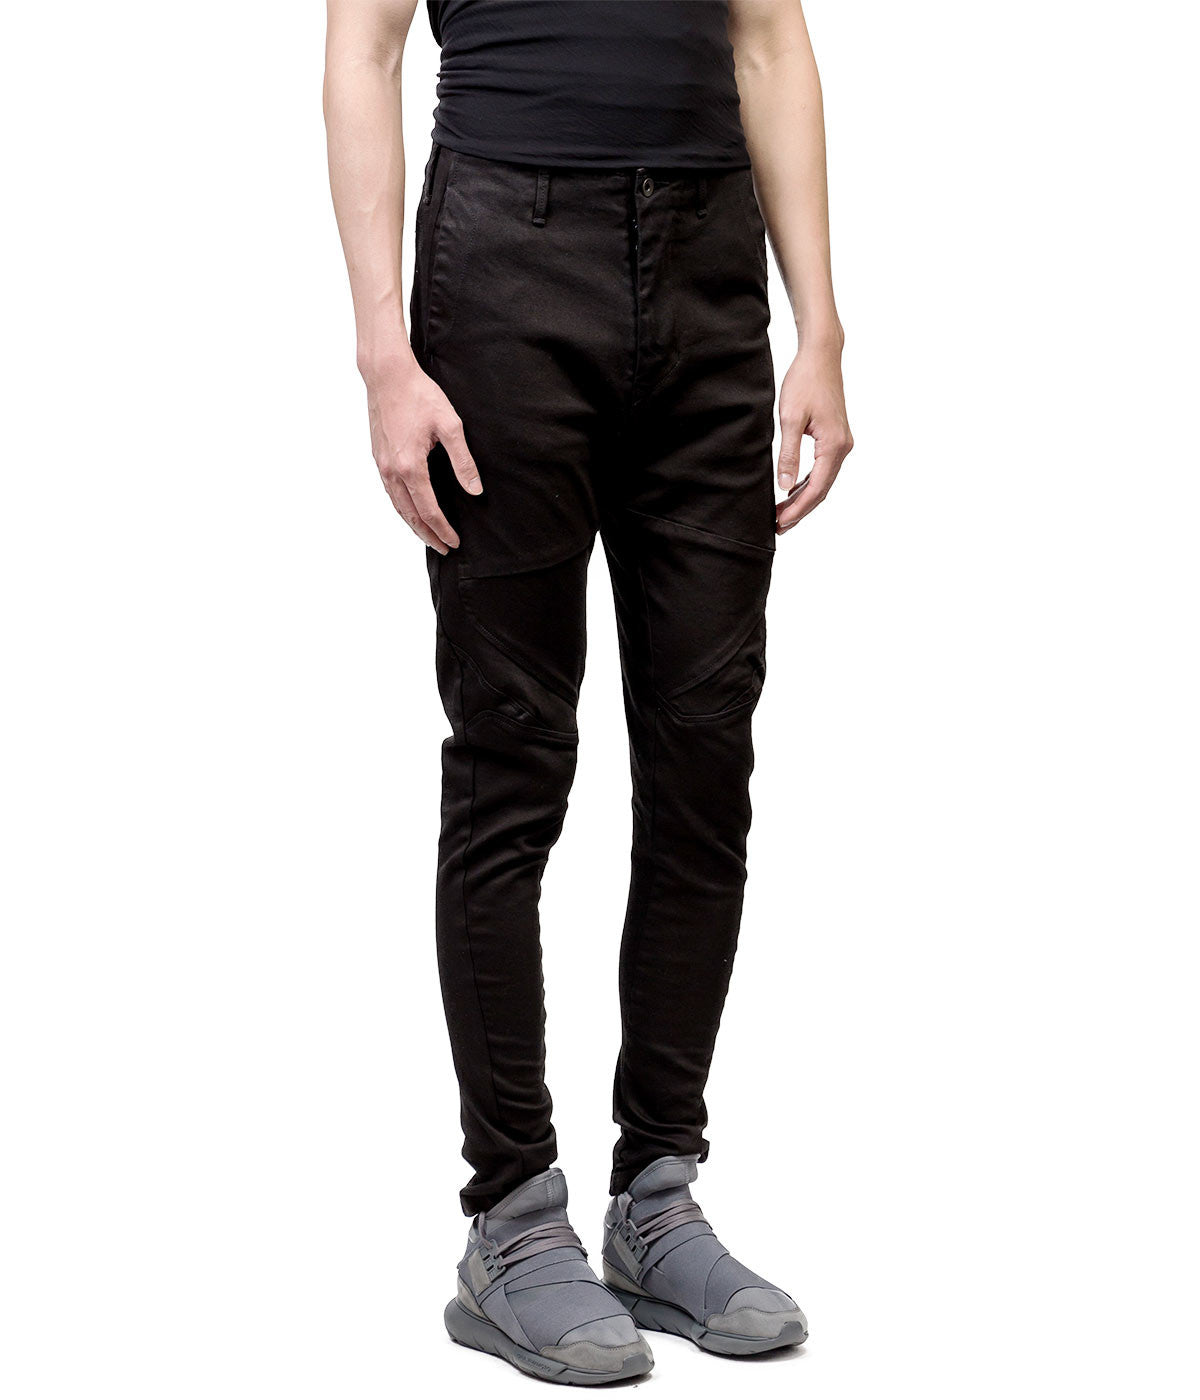 Black Twill Stretch Denim Pants